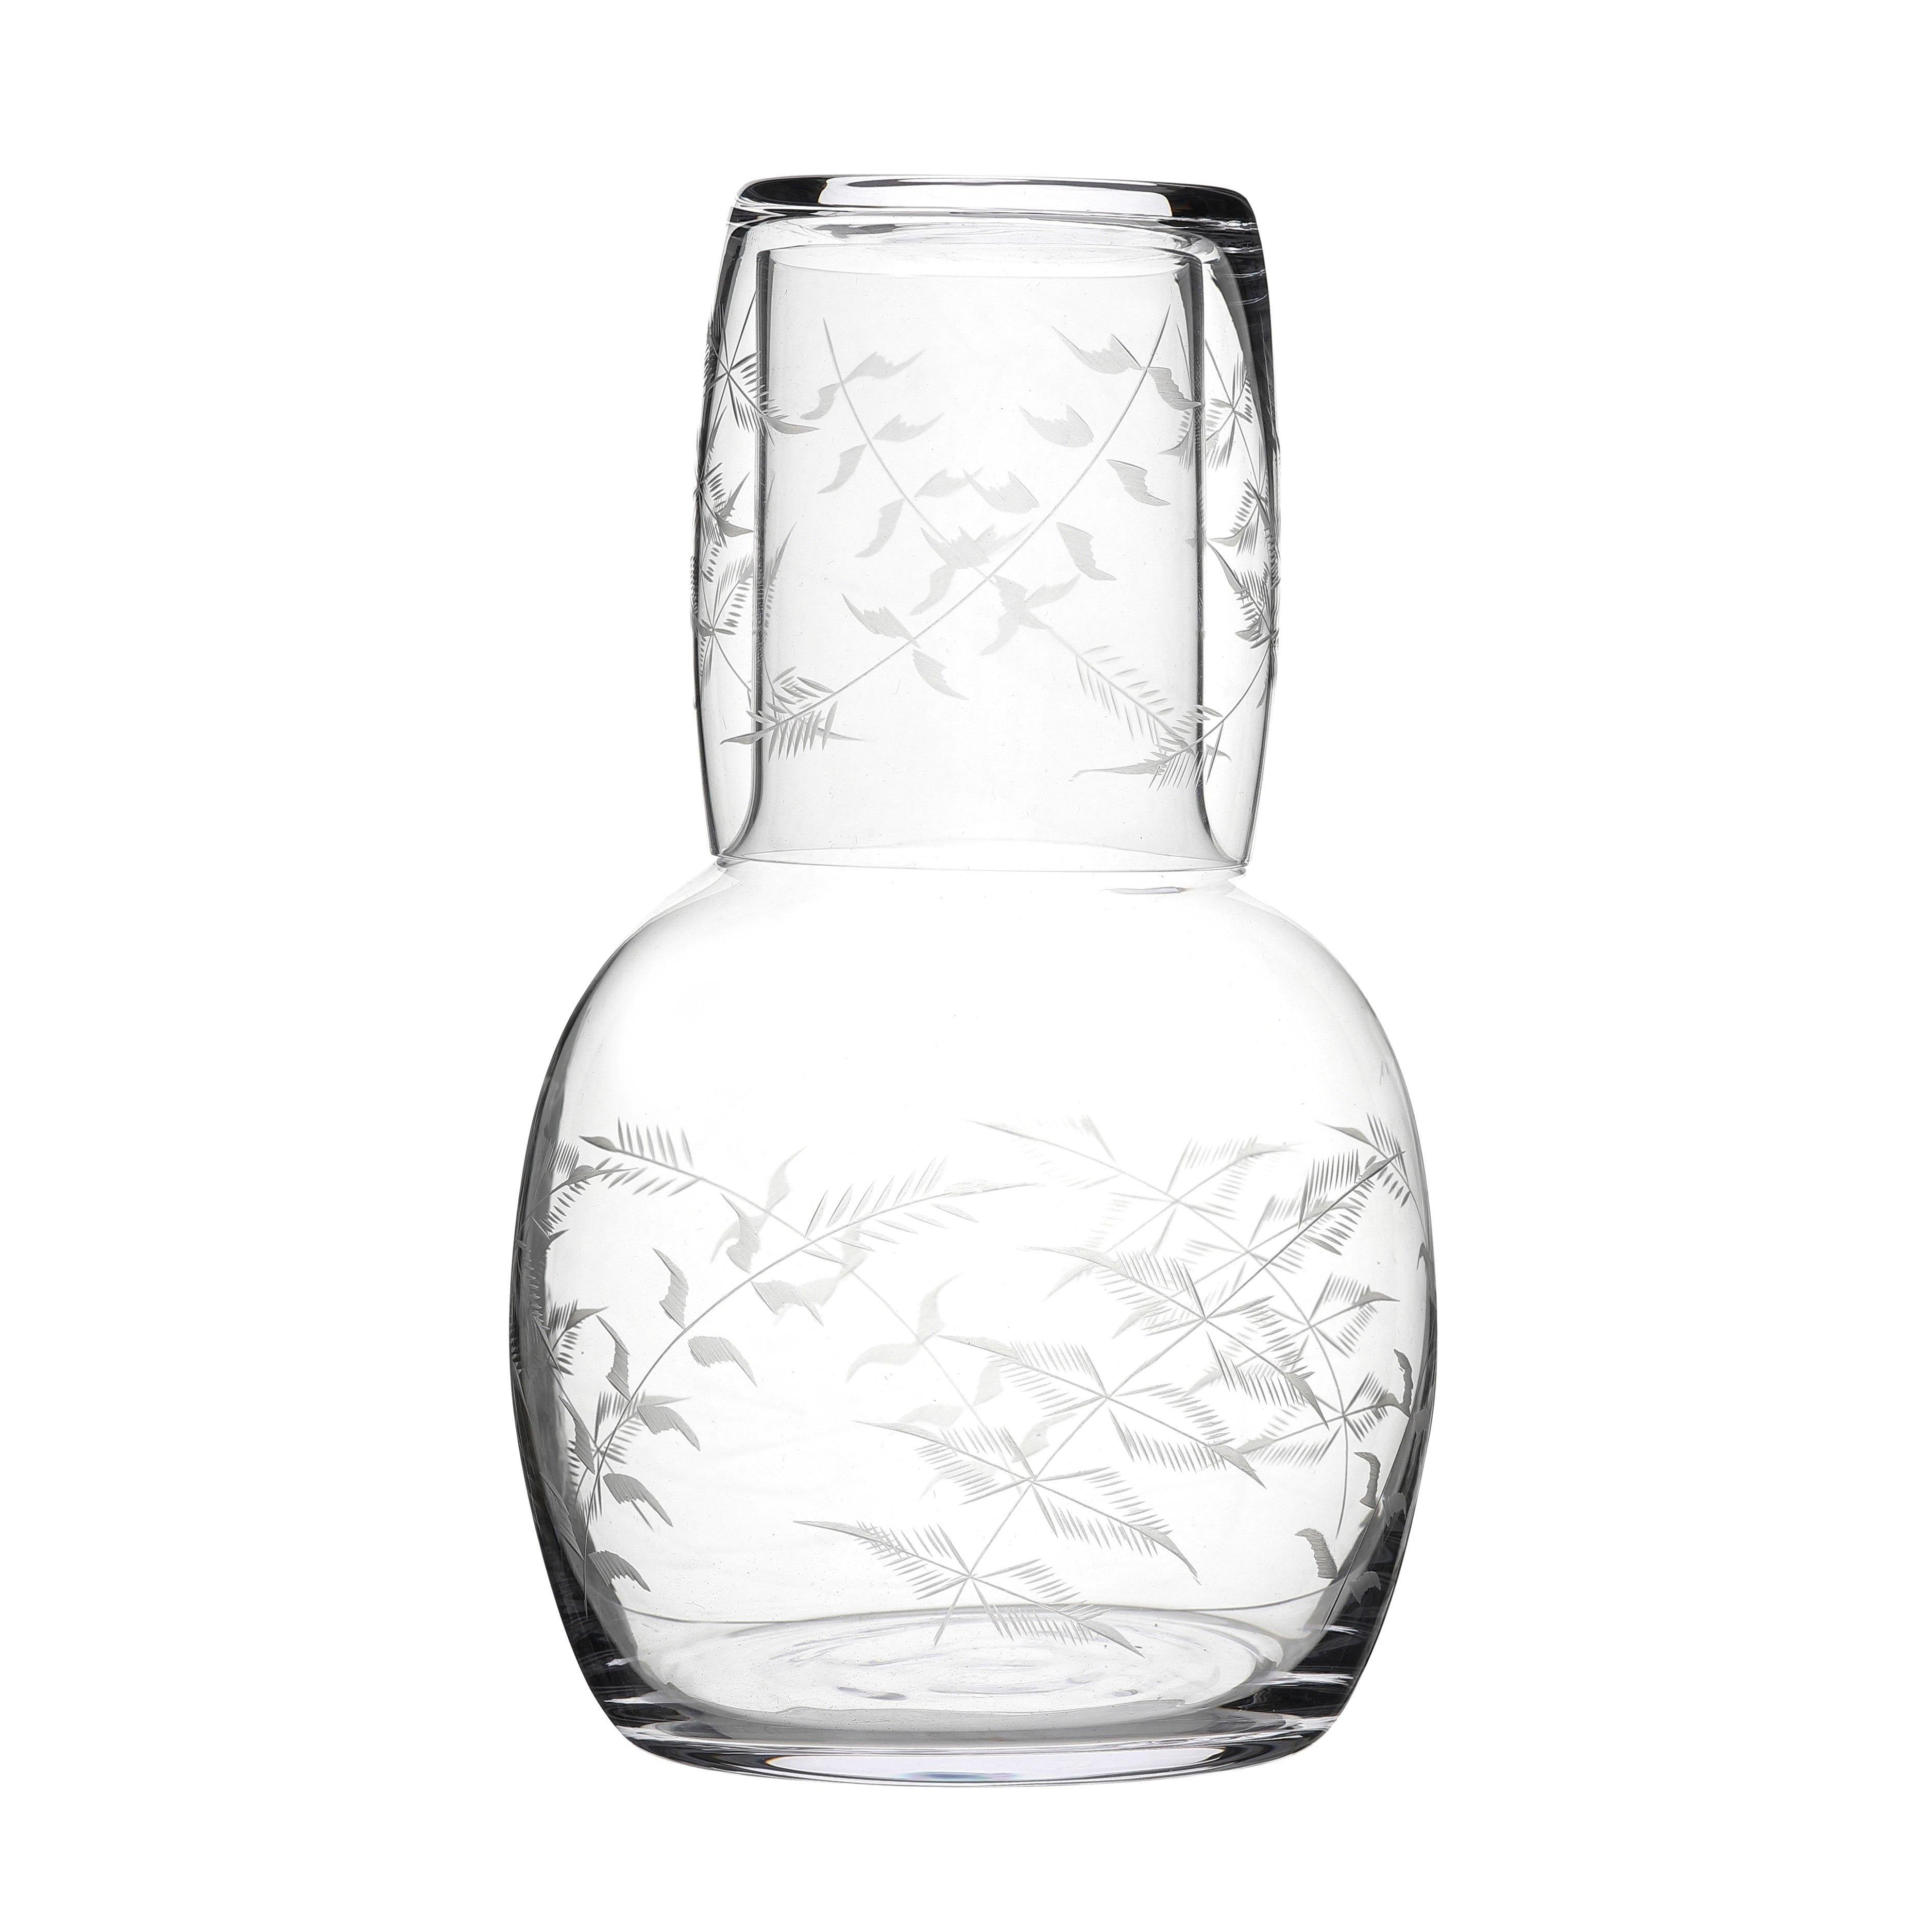 Carafe and Glass with Fern Design